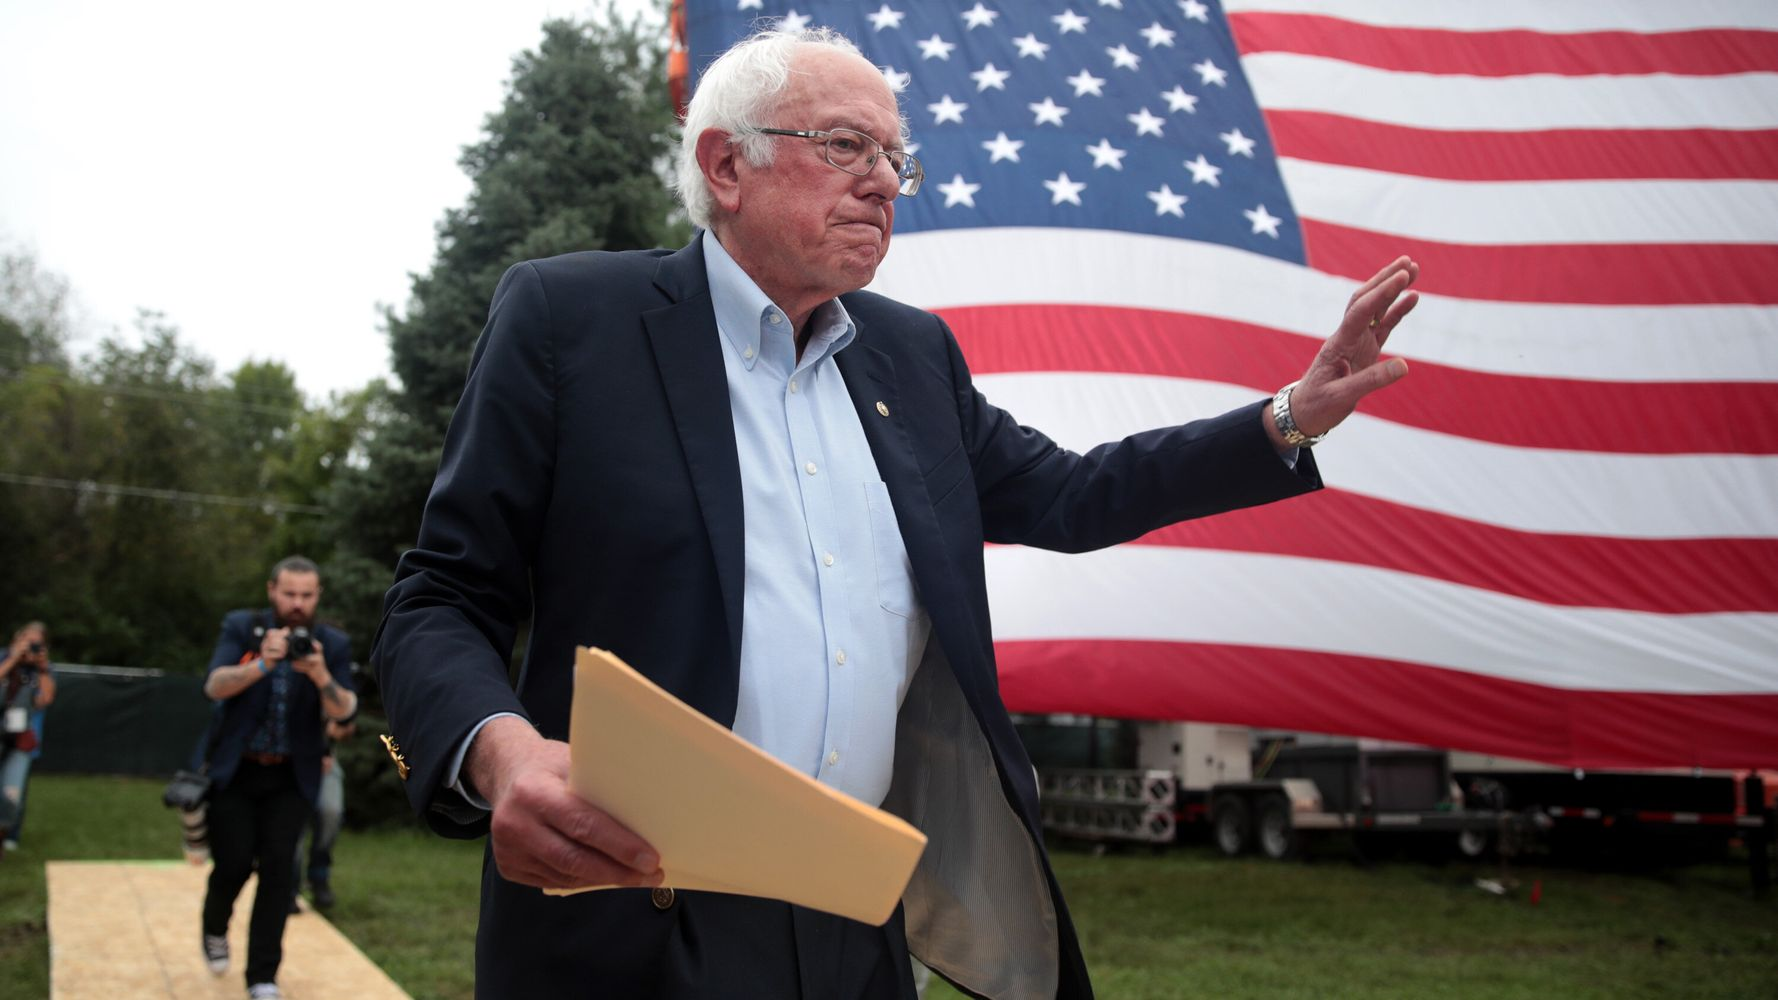 Westlake Legal Group 5d97c2f72100005000a96854 Bernie Sanders Suffered Heart Attack, Doctors Confirm